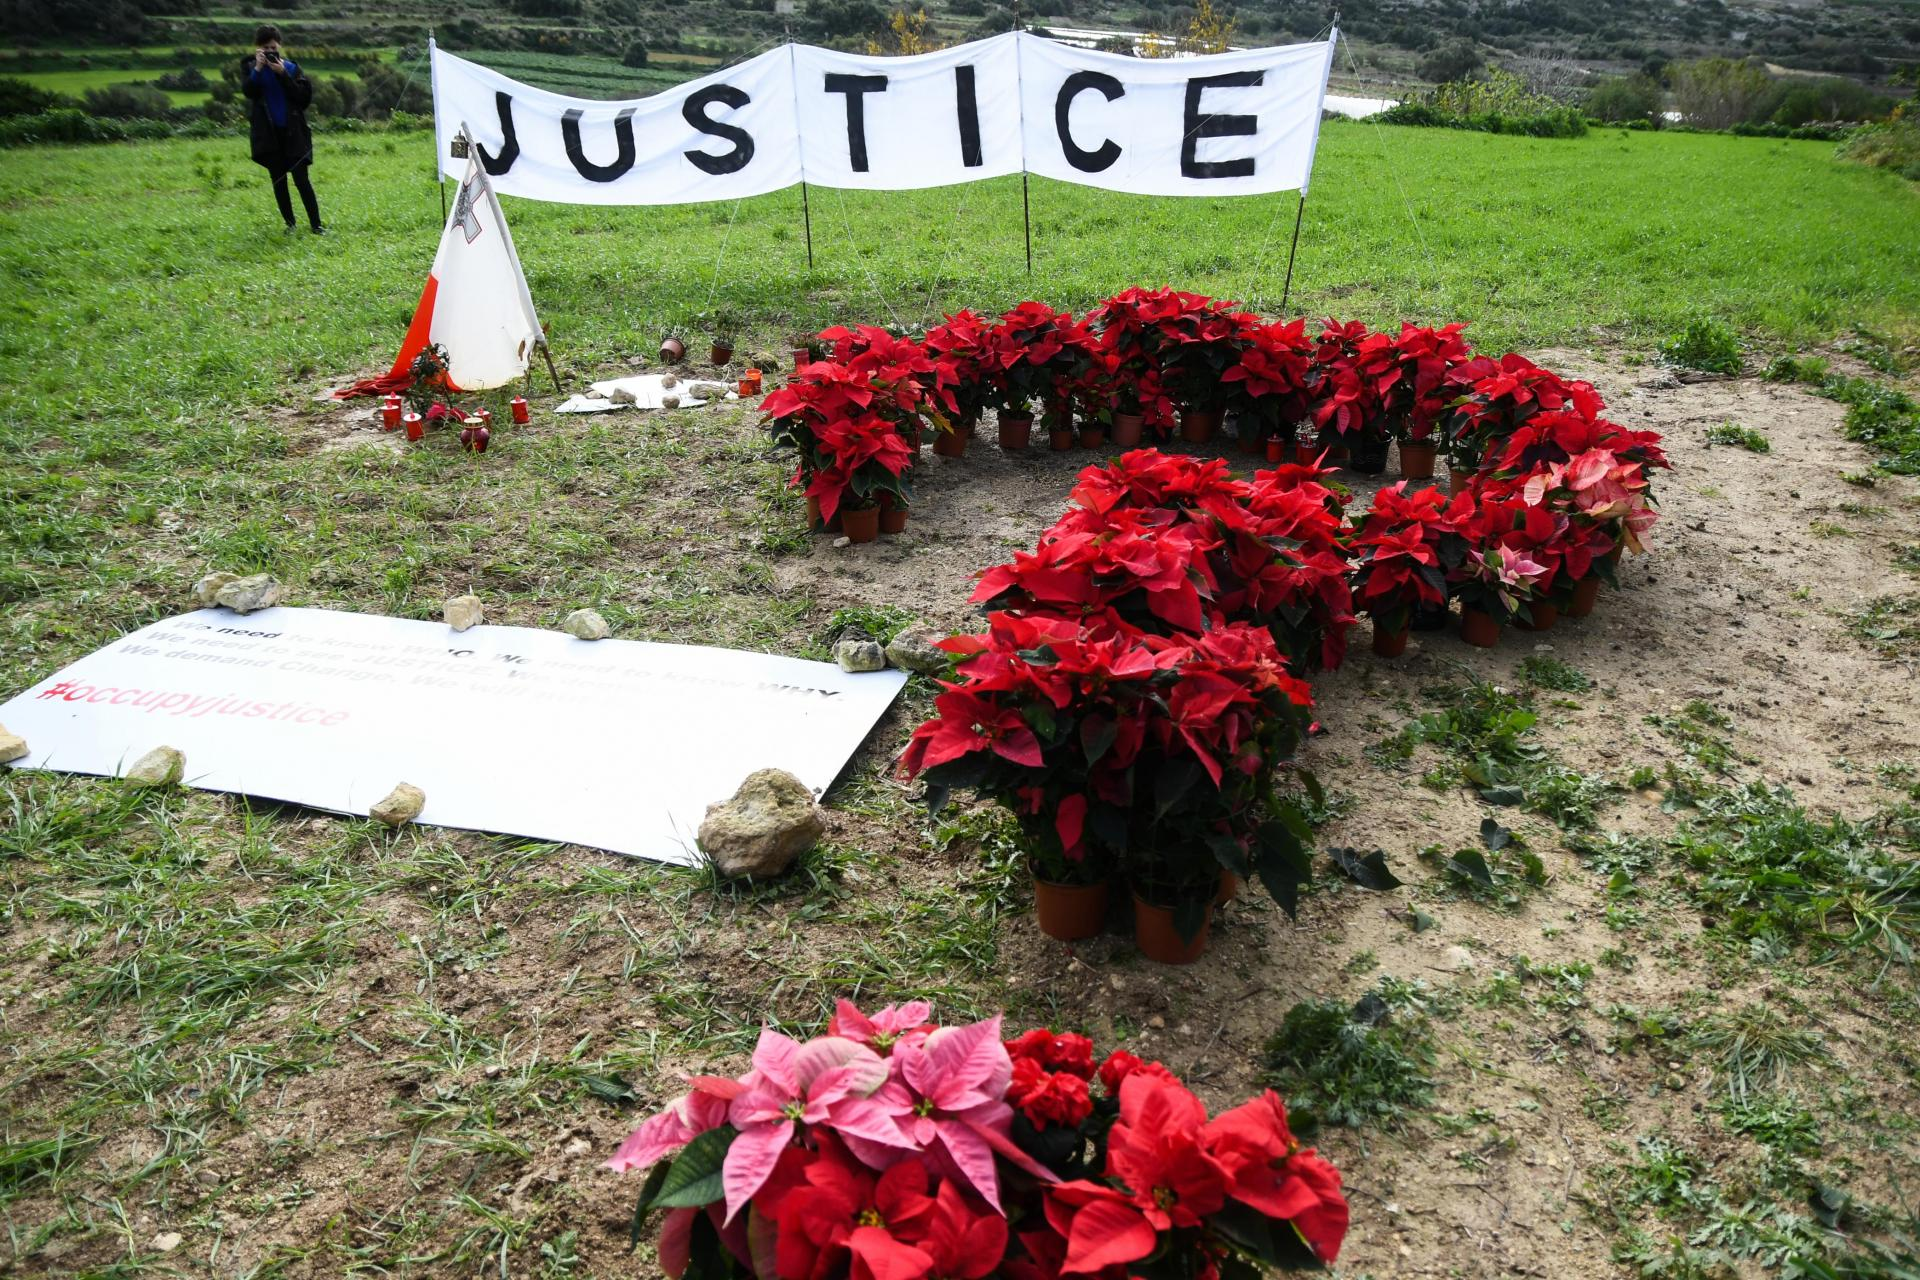 Flowers and a banner bearing the word 'justice' placed by civil society activists in Bidnija close to the site where Ms Caruana Galizia was murdered.